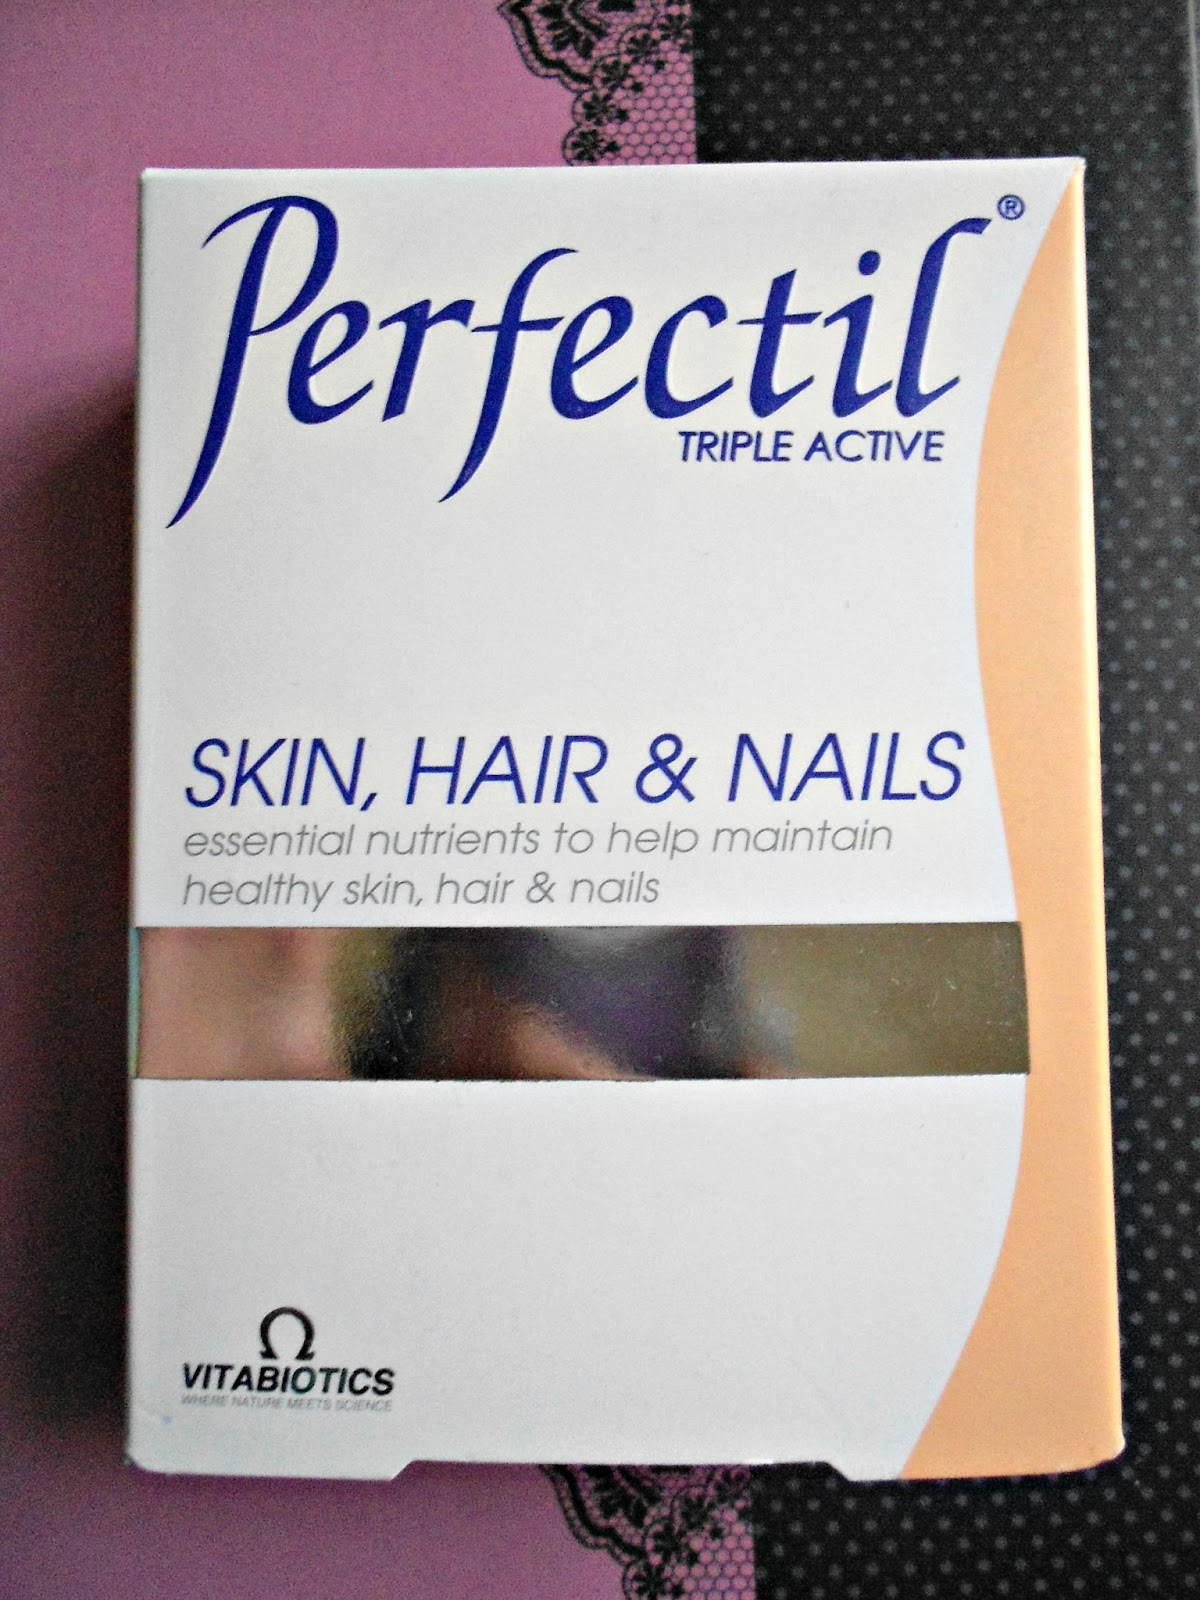 Lola Loves Sparkles: Perfectil Skin, Hair, Nail Vitamins [Review]